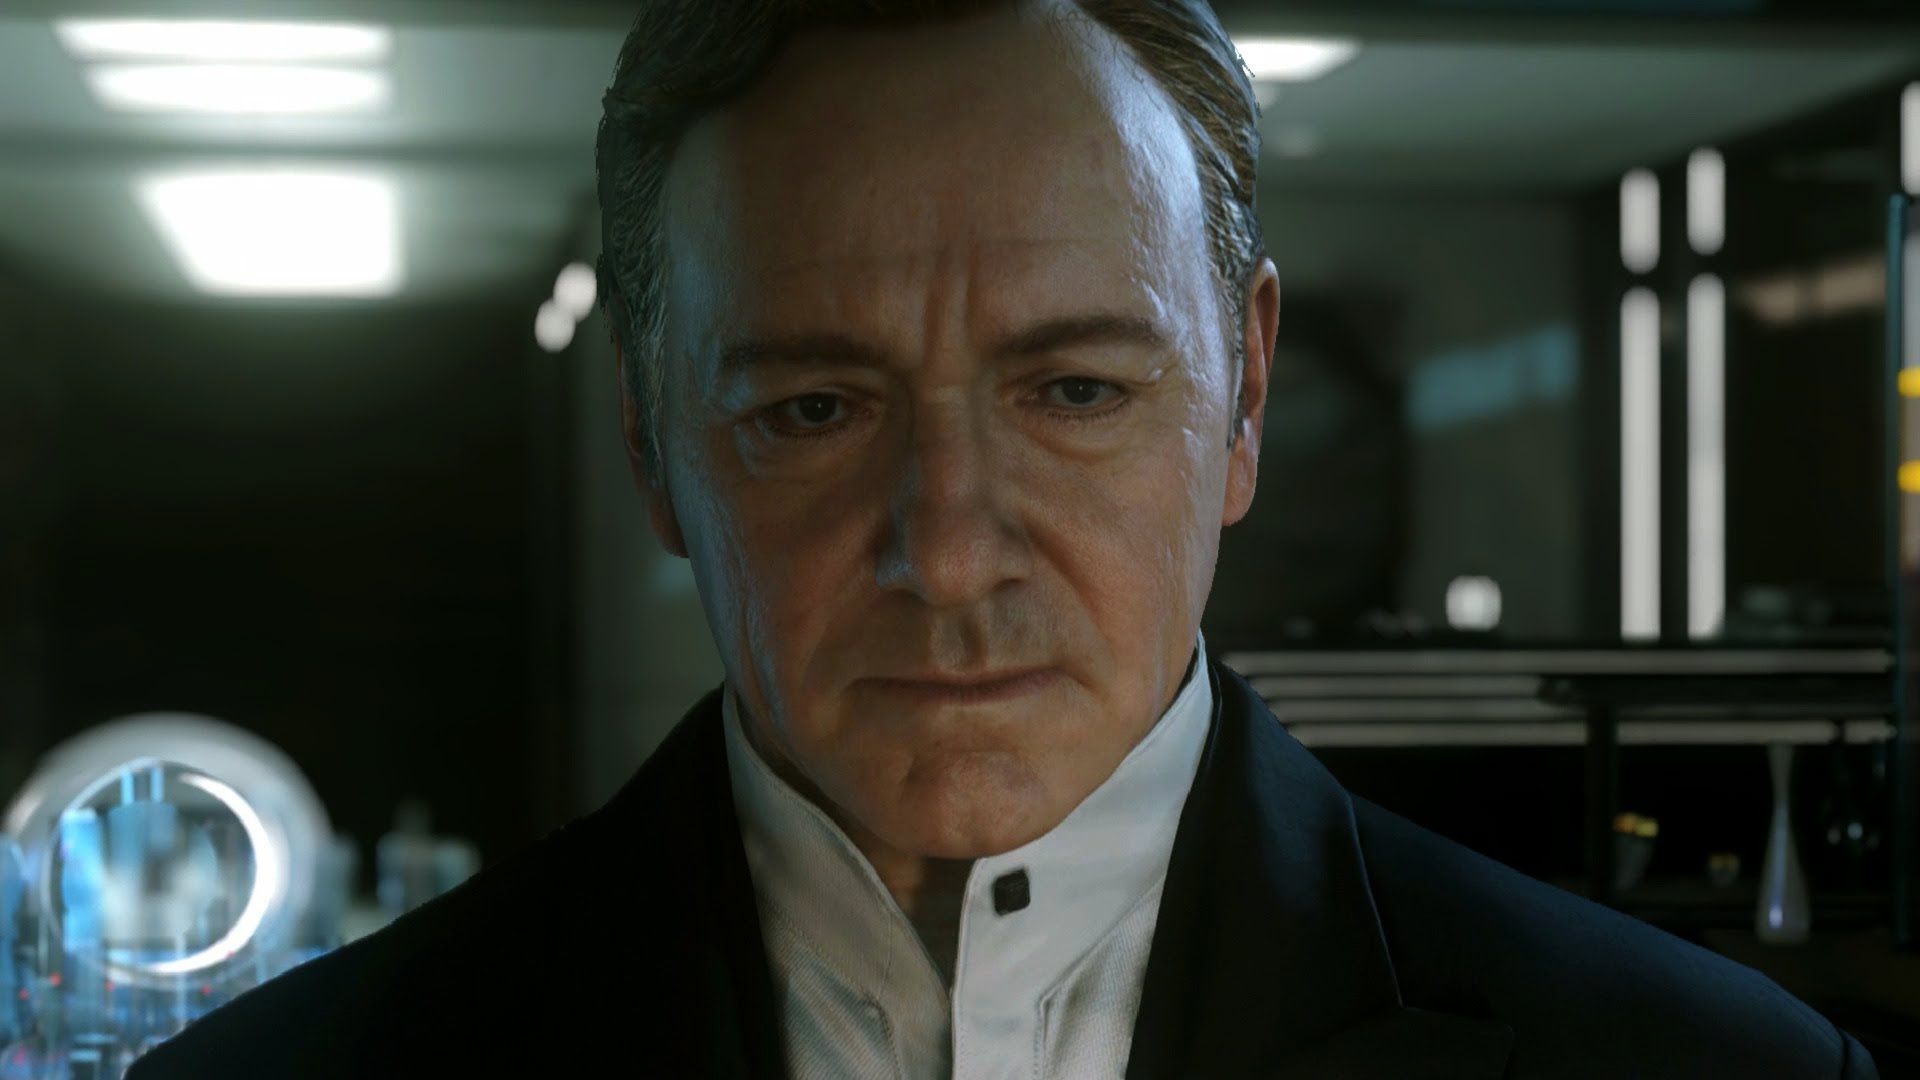 Kevin Spacey in trailer for Call of Duty: Advanced Warfare